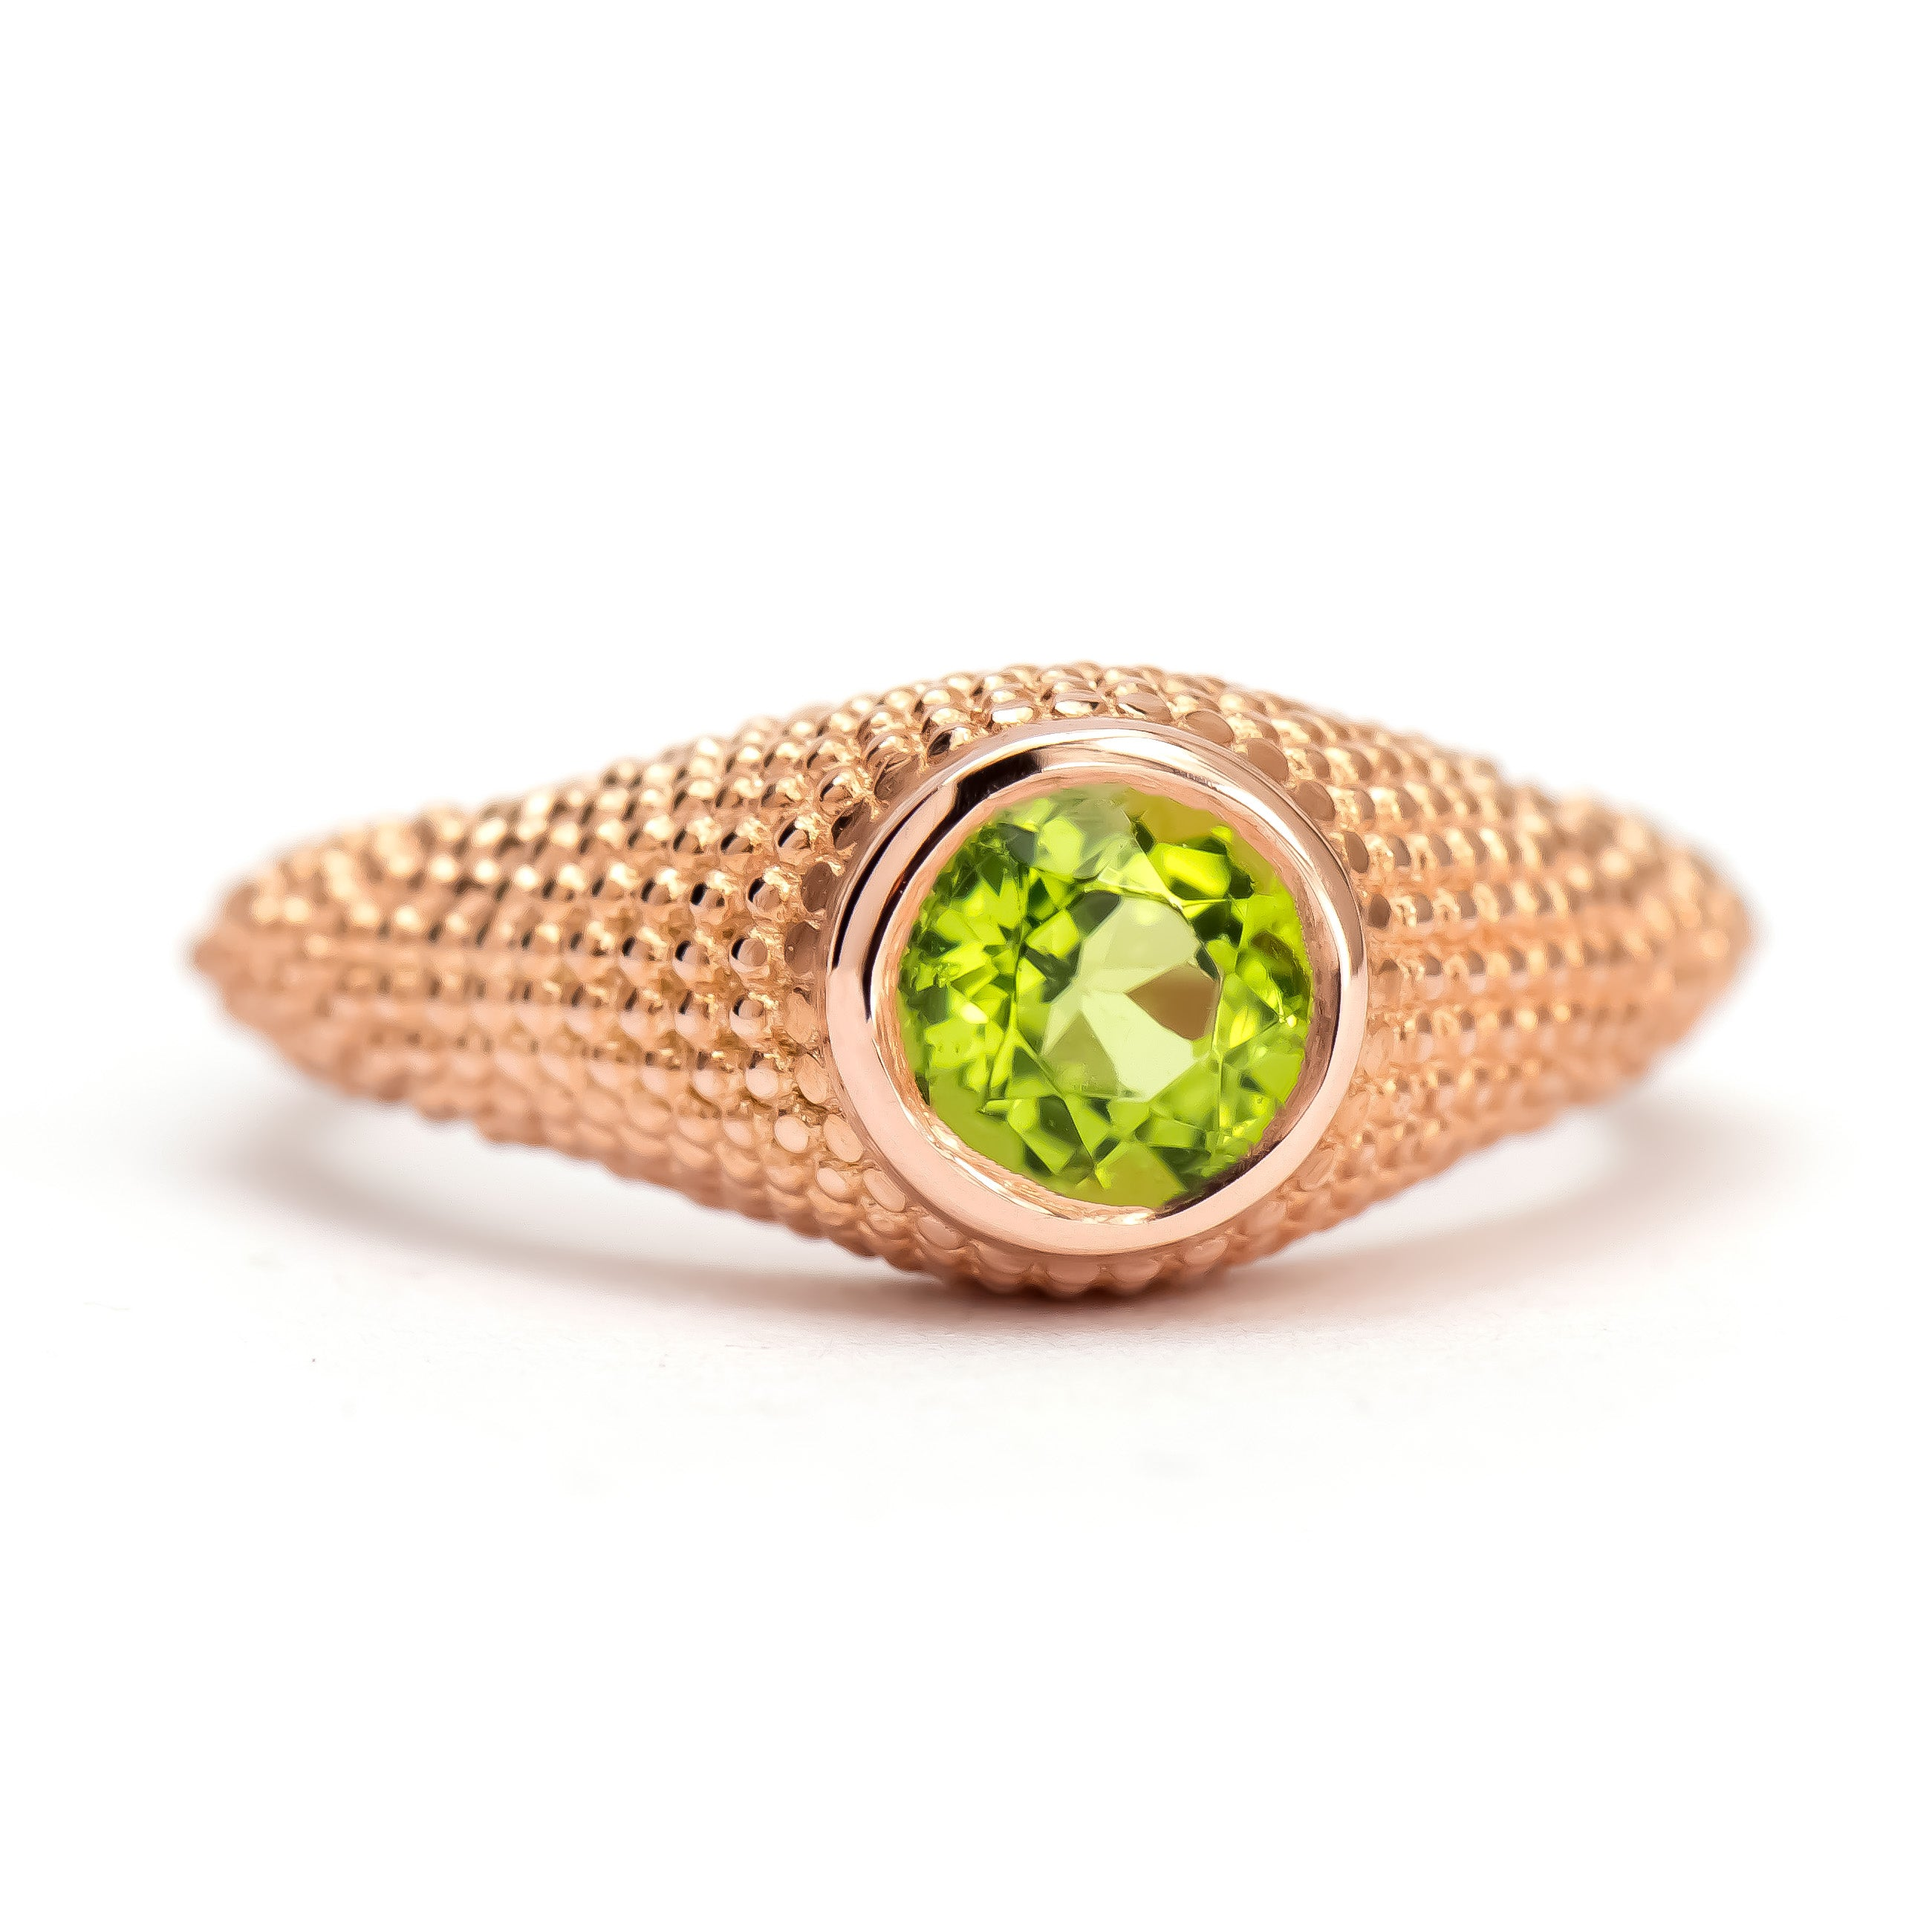 Nubia Round Peridot Rose Gold Ring Size 7US - Manari Design